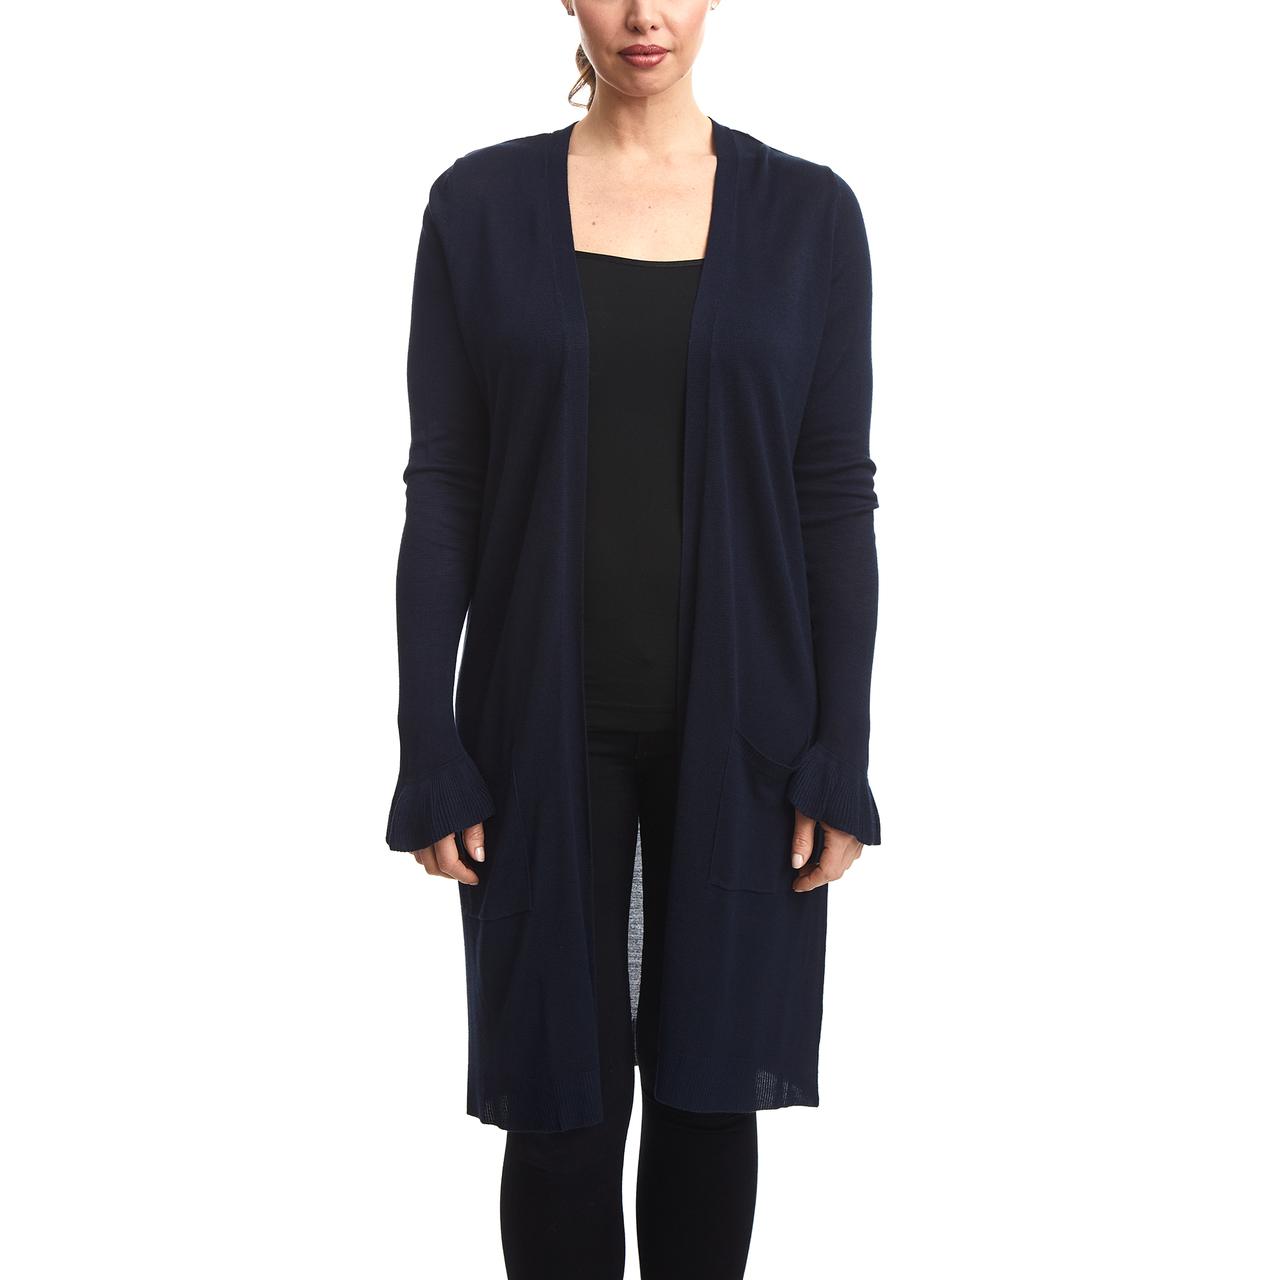 Duster Cardigan with Ruffle Cuff in Navy